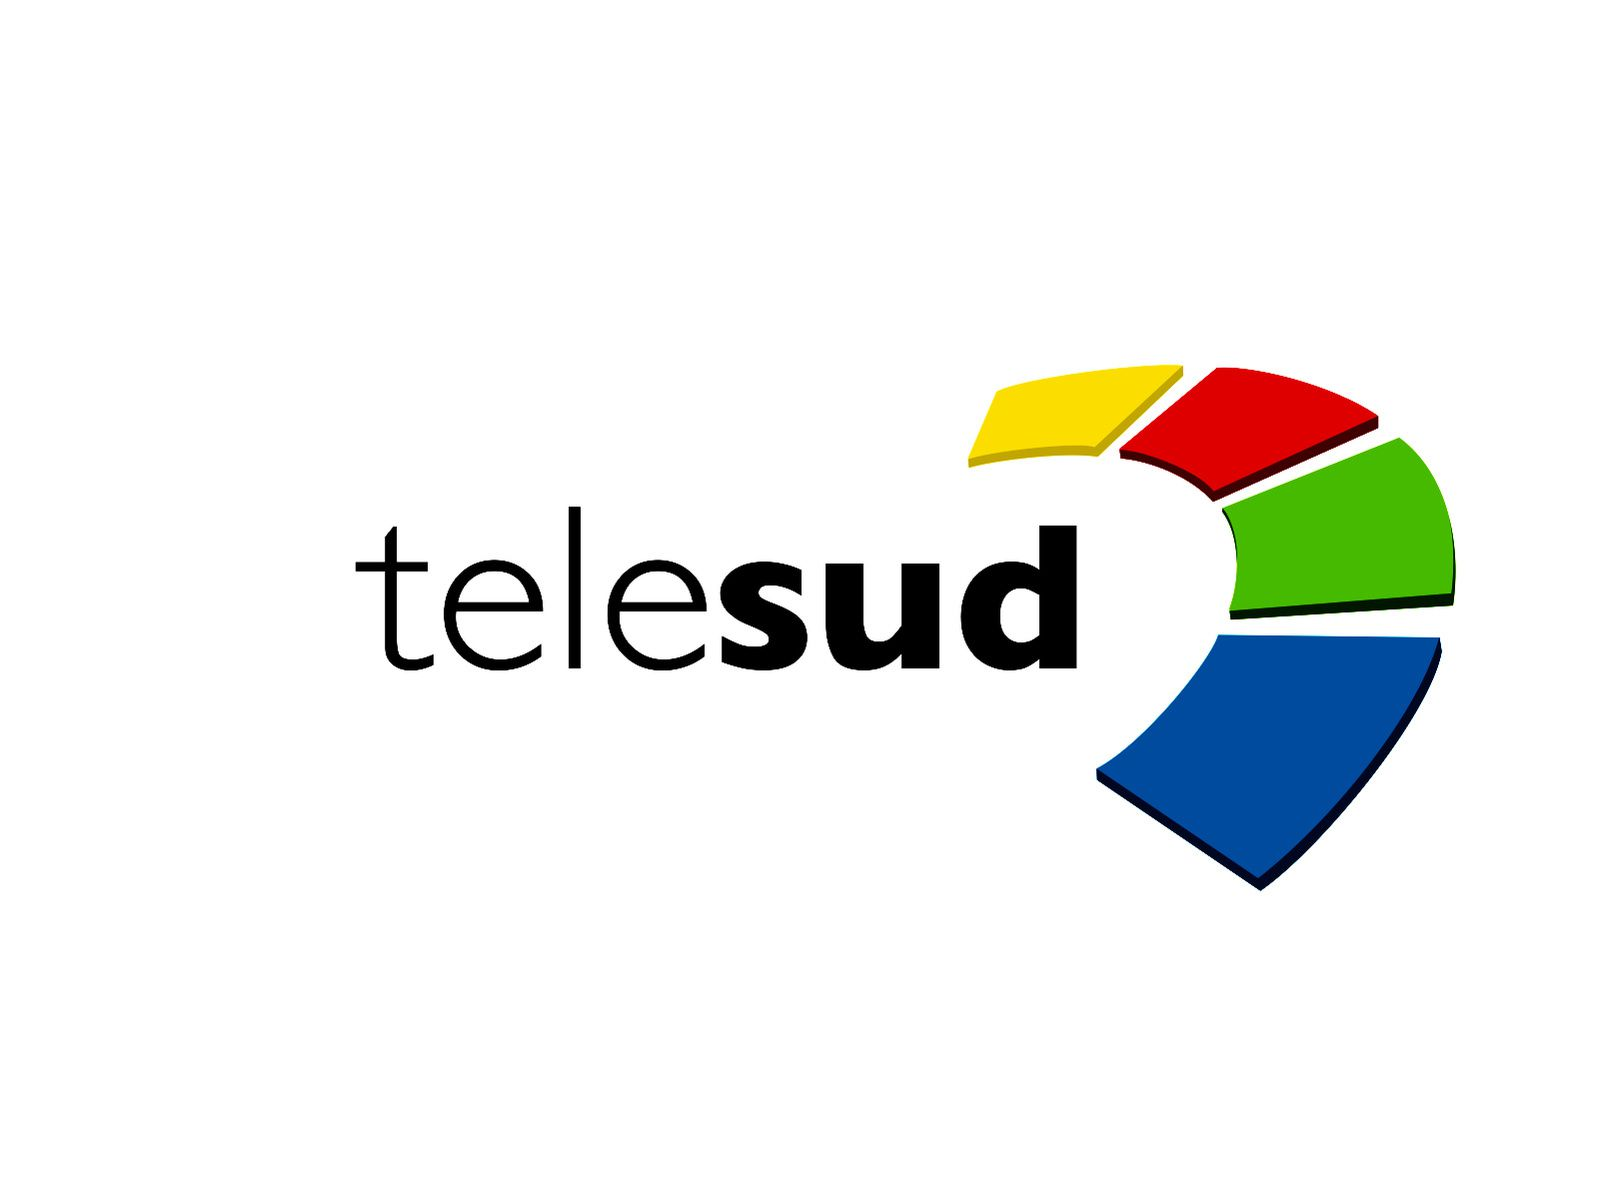 Télésud relookée : innovation importante d'une chaine panafricaine à vocation internationale